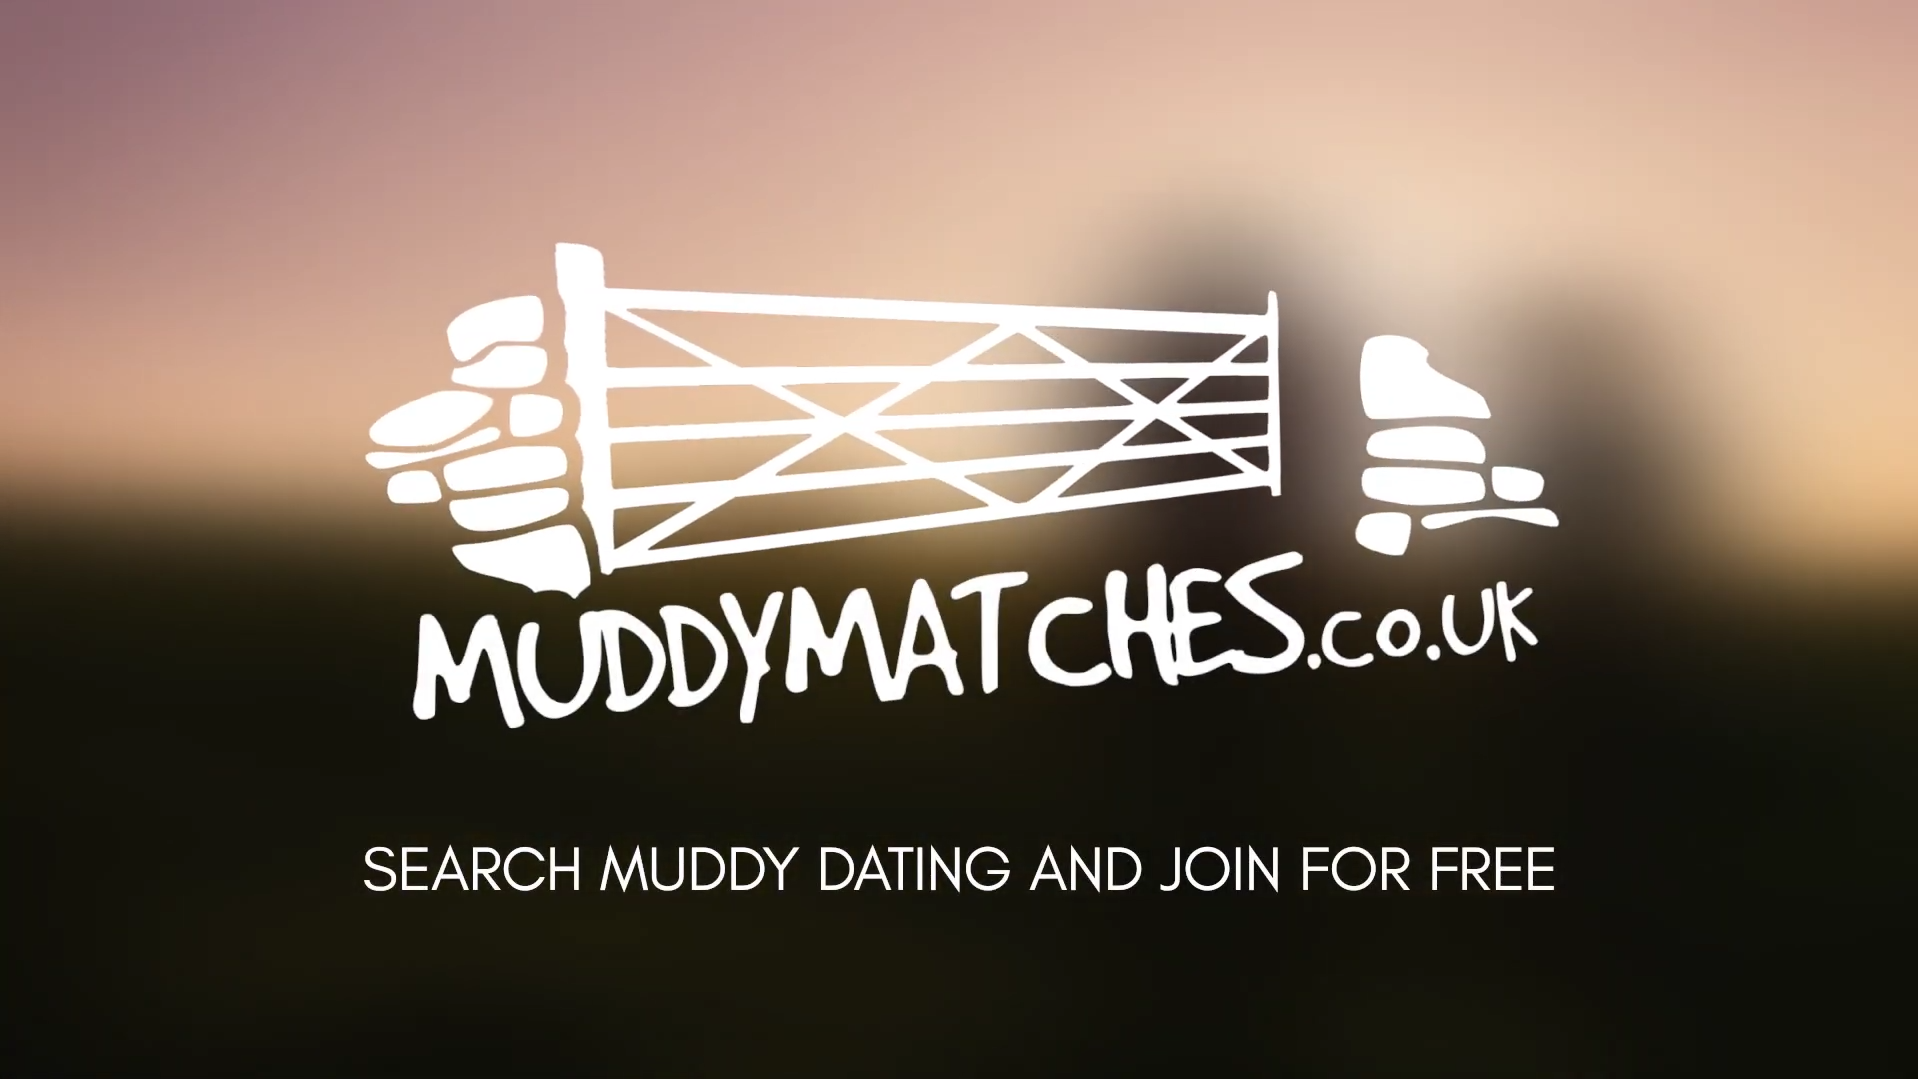 Muddy Matches Broadcasts First UK Television Campaign